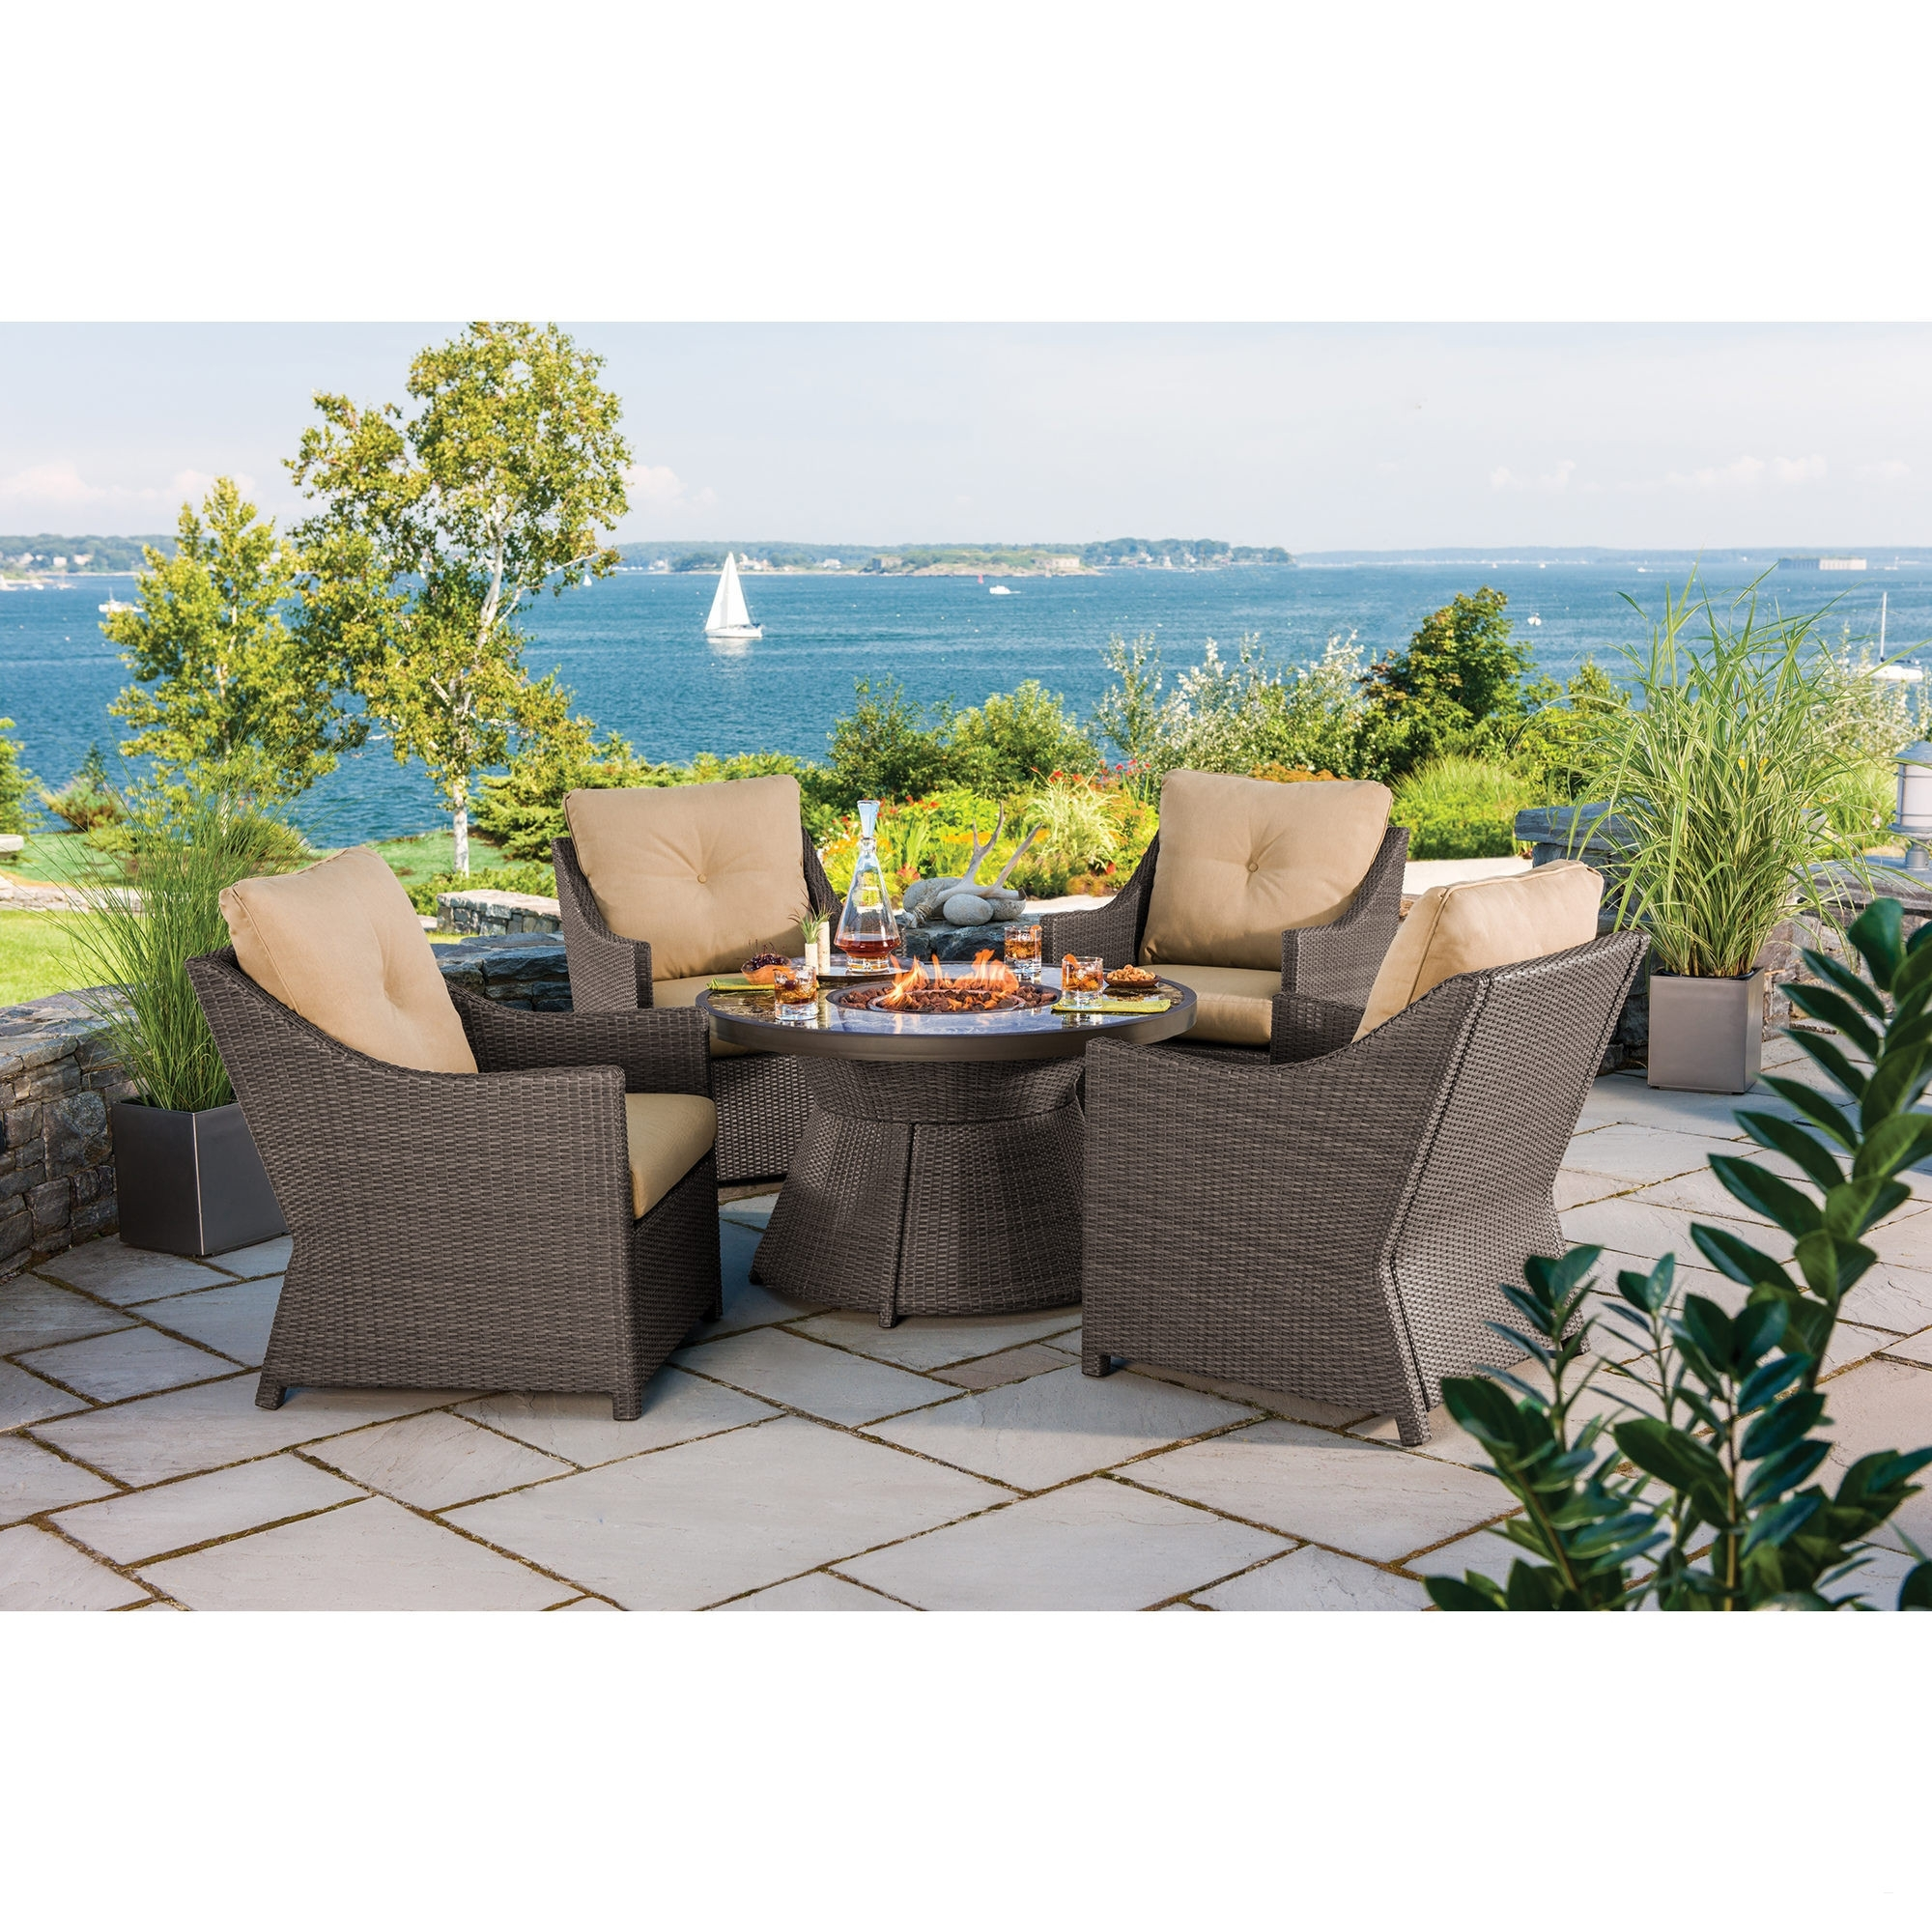 Latest Patio Conversation Sets Under 500 Patio Furniture Walmart Outdoor For Patio Conversation Sets Under $ (View 8 of 20)